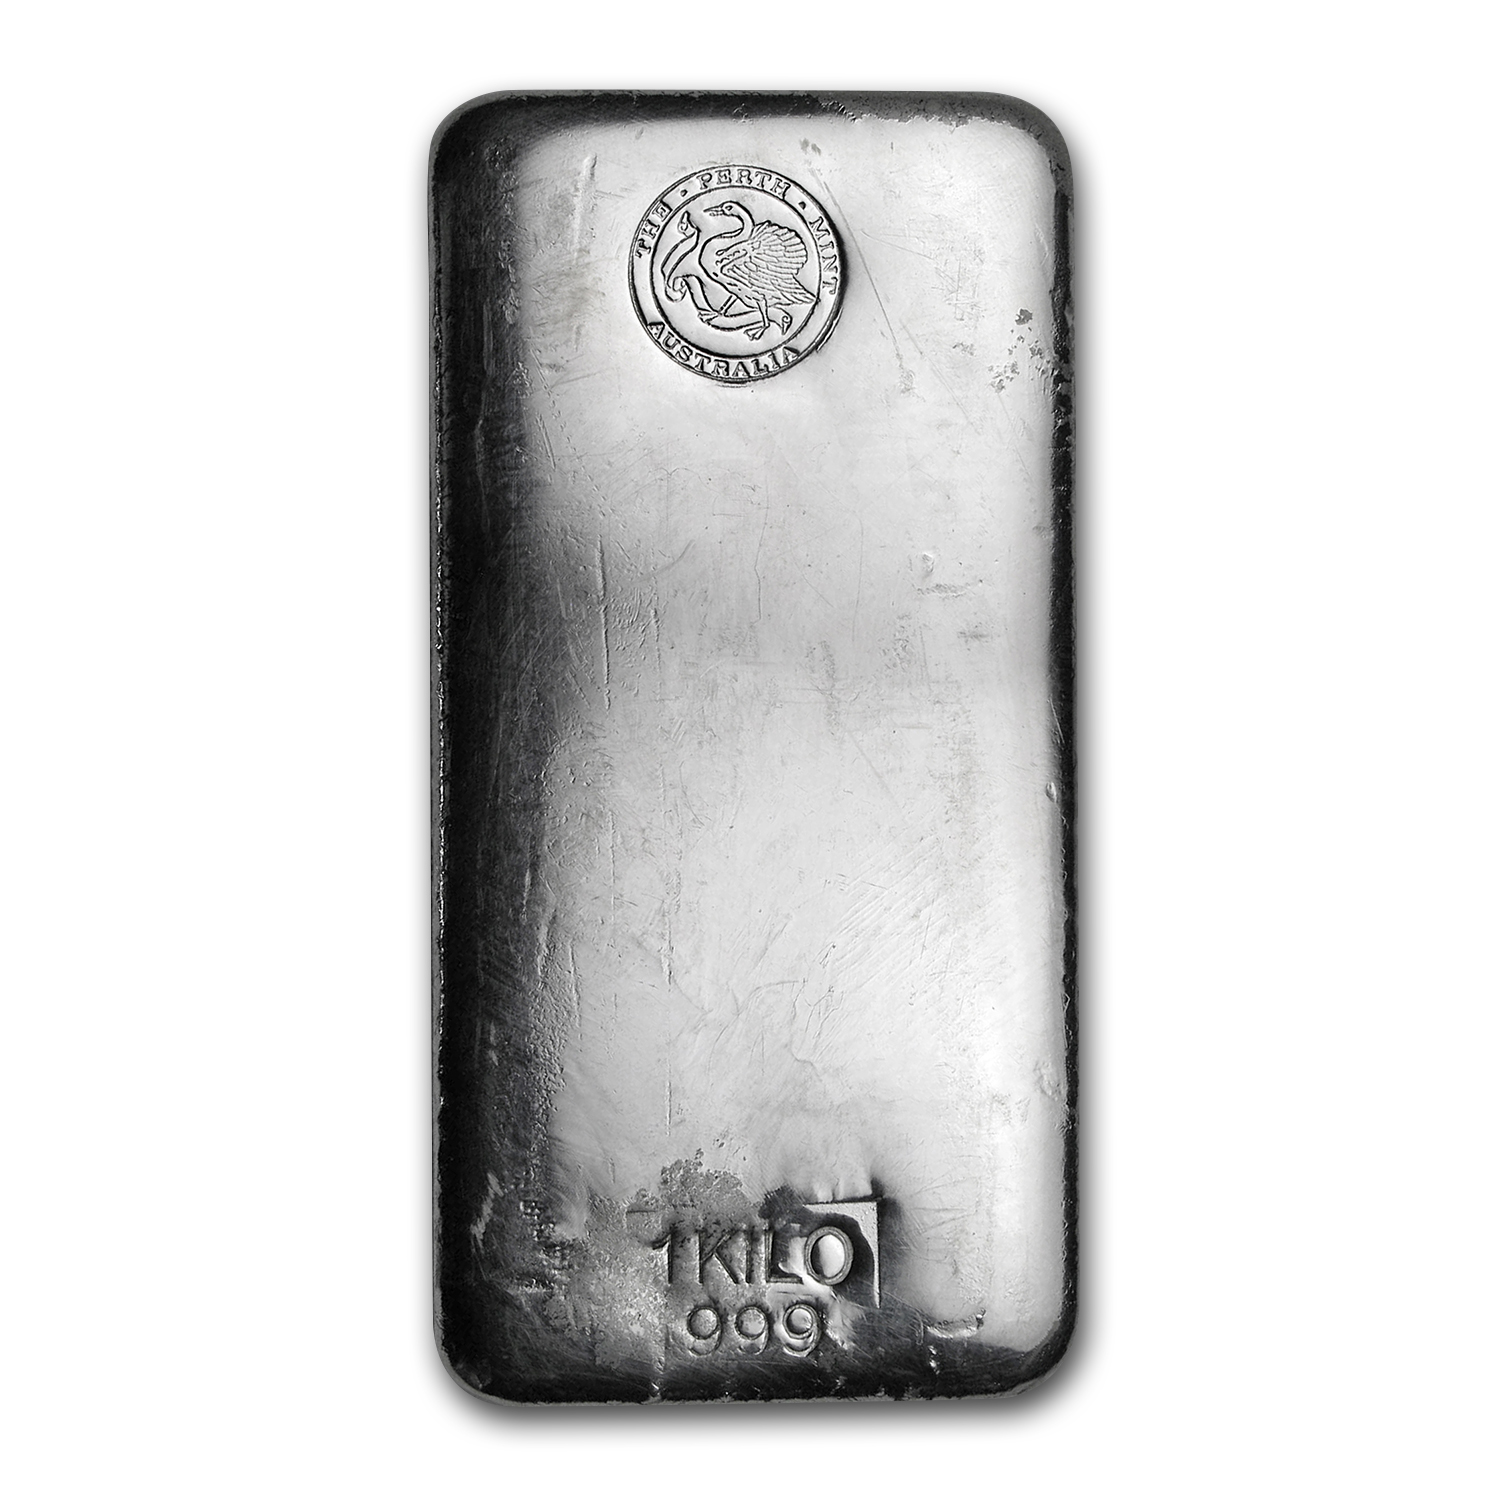 1 Kilo Silver Bars - Perth Mint (Poured)